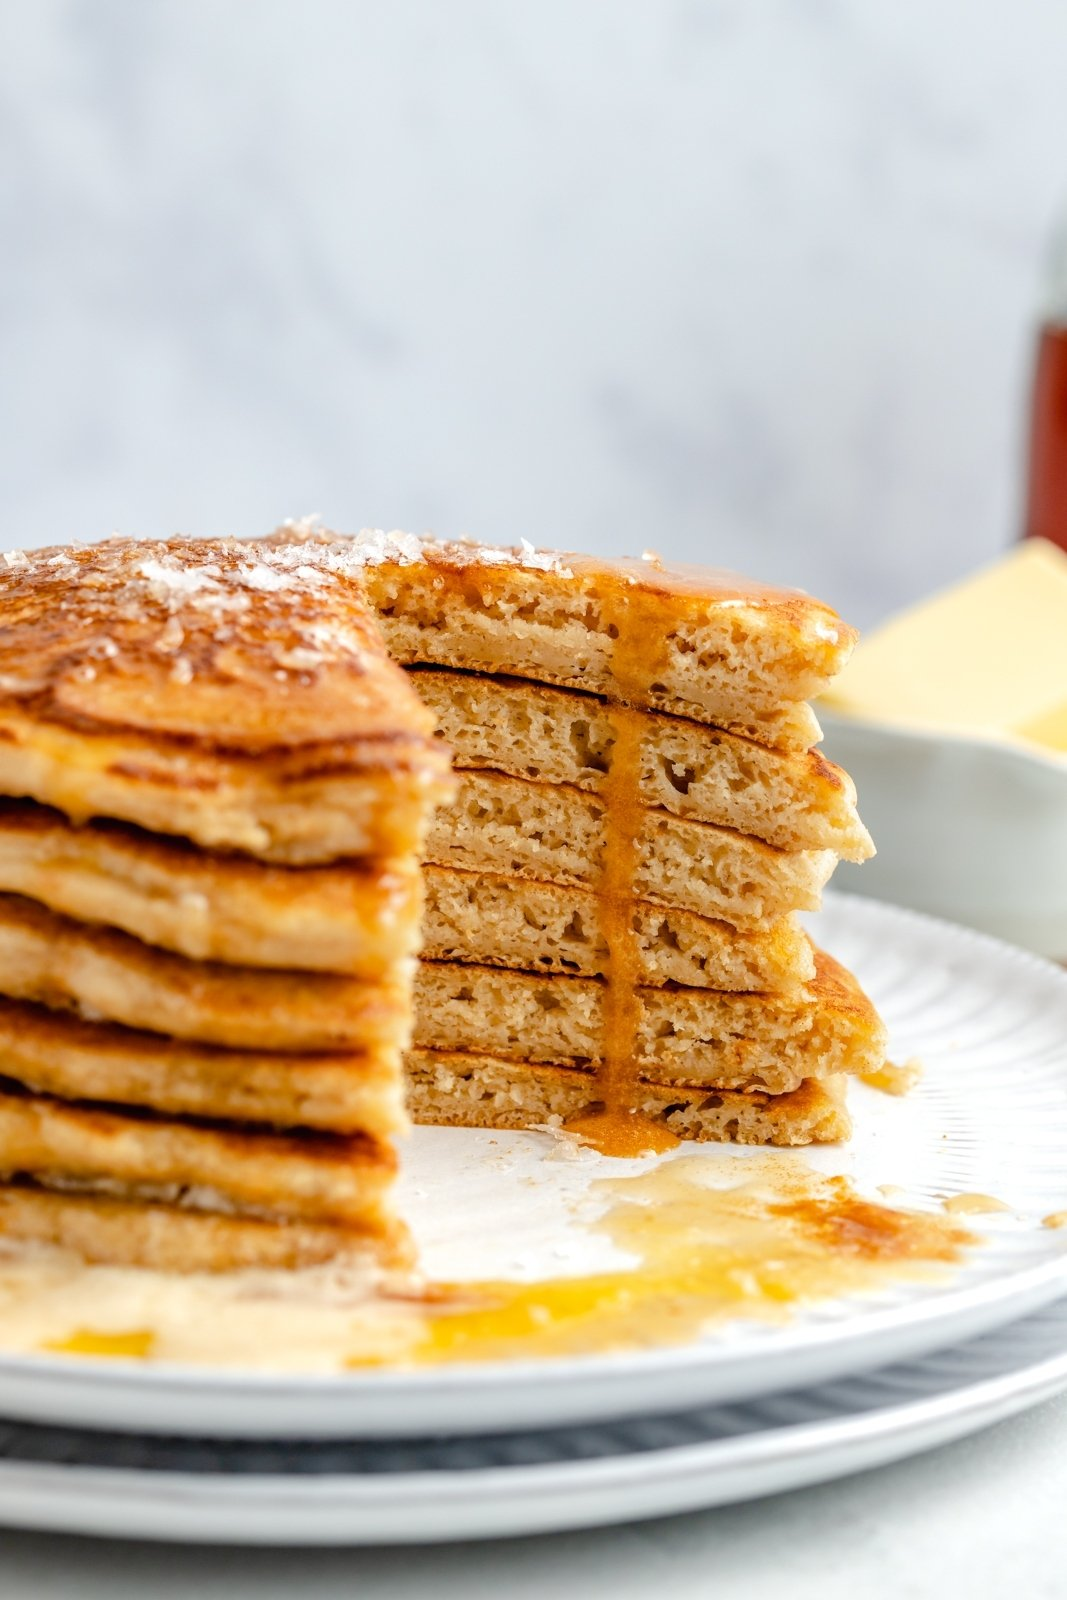 stack of brown butter pancakes with a bite cut out